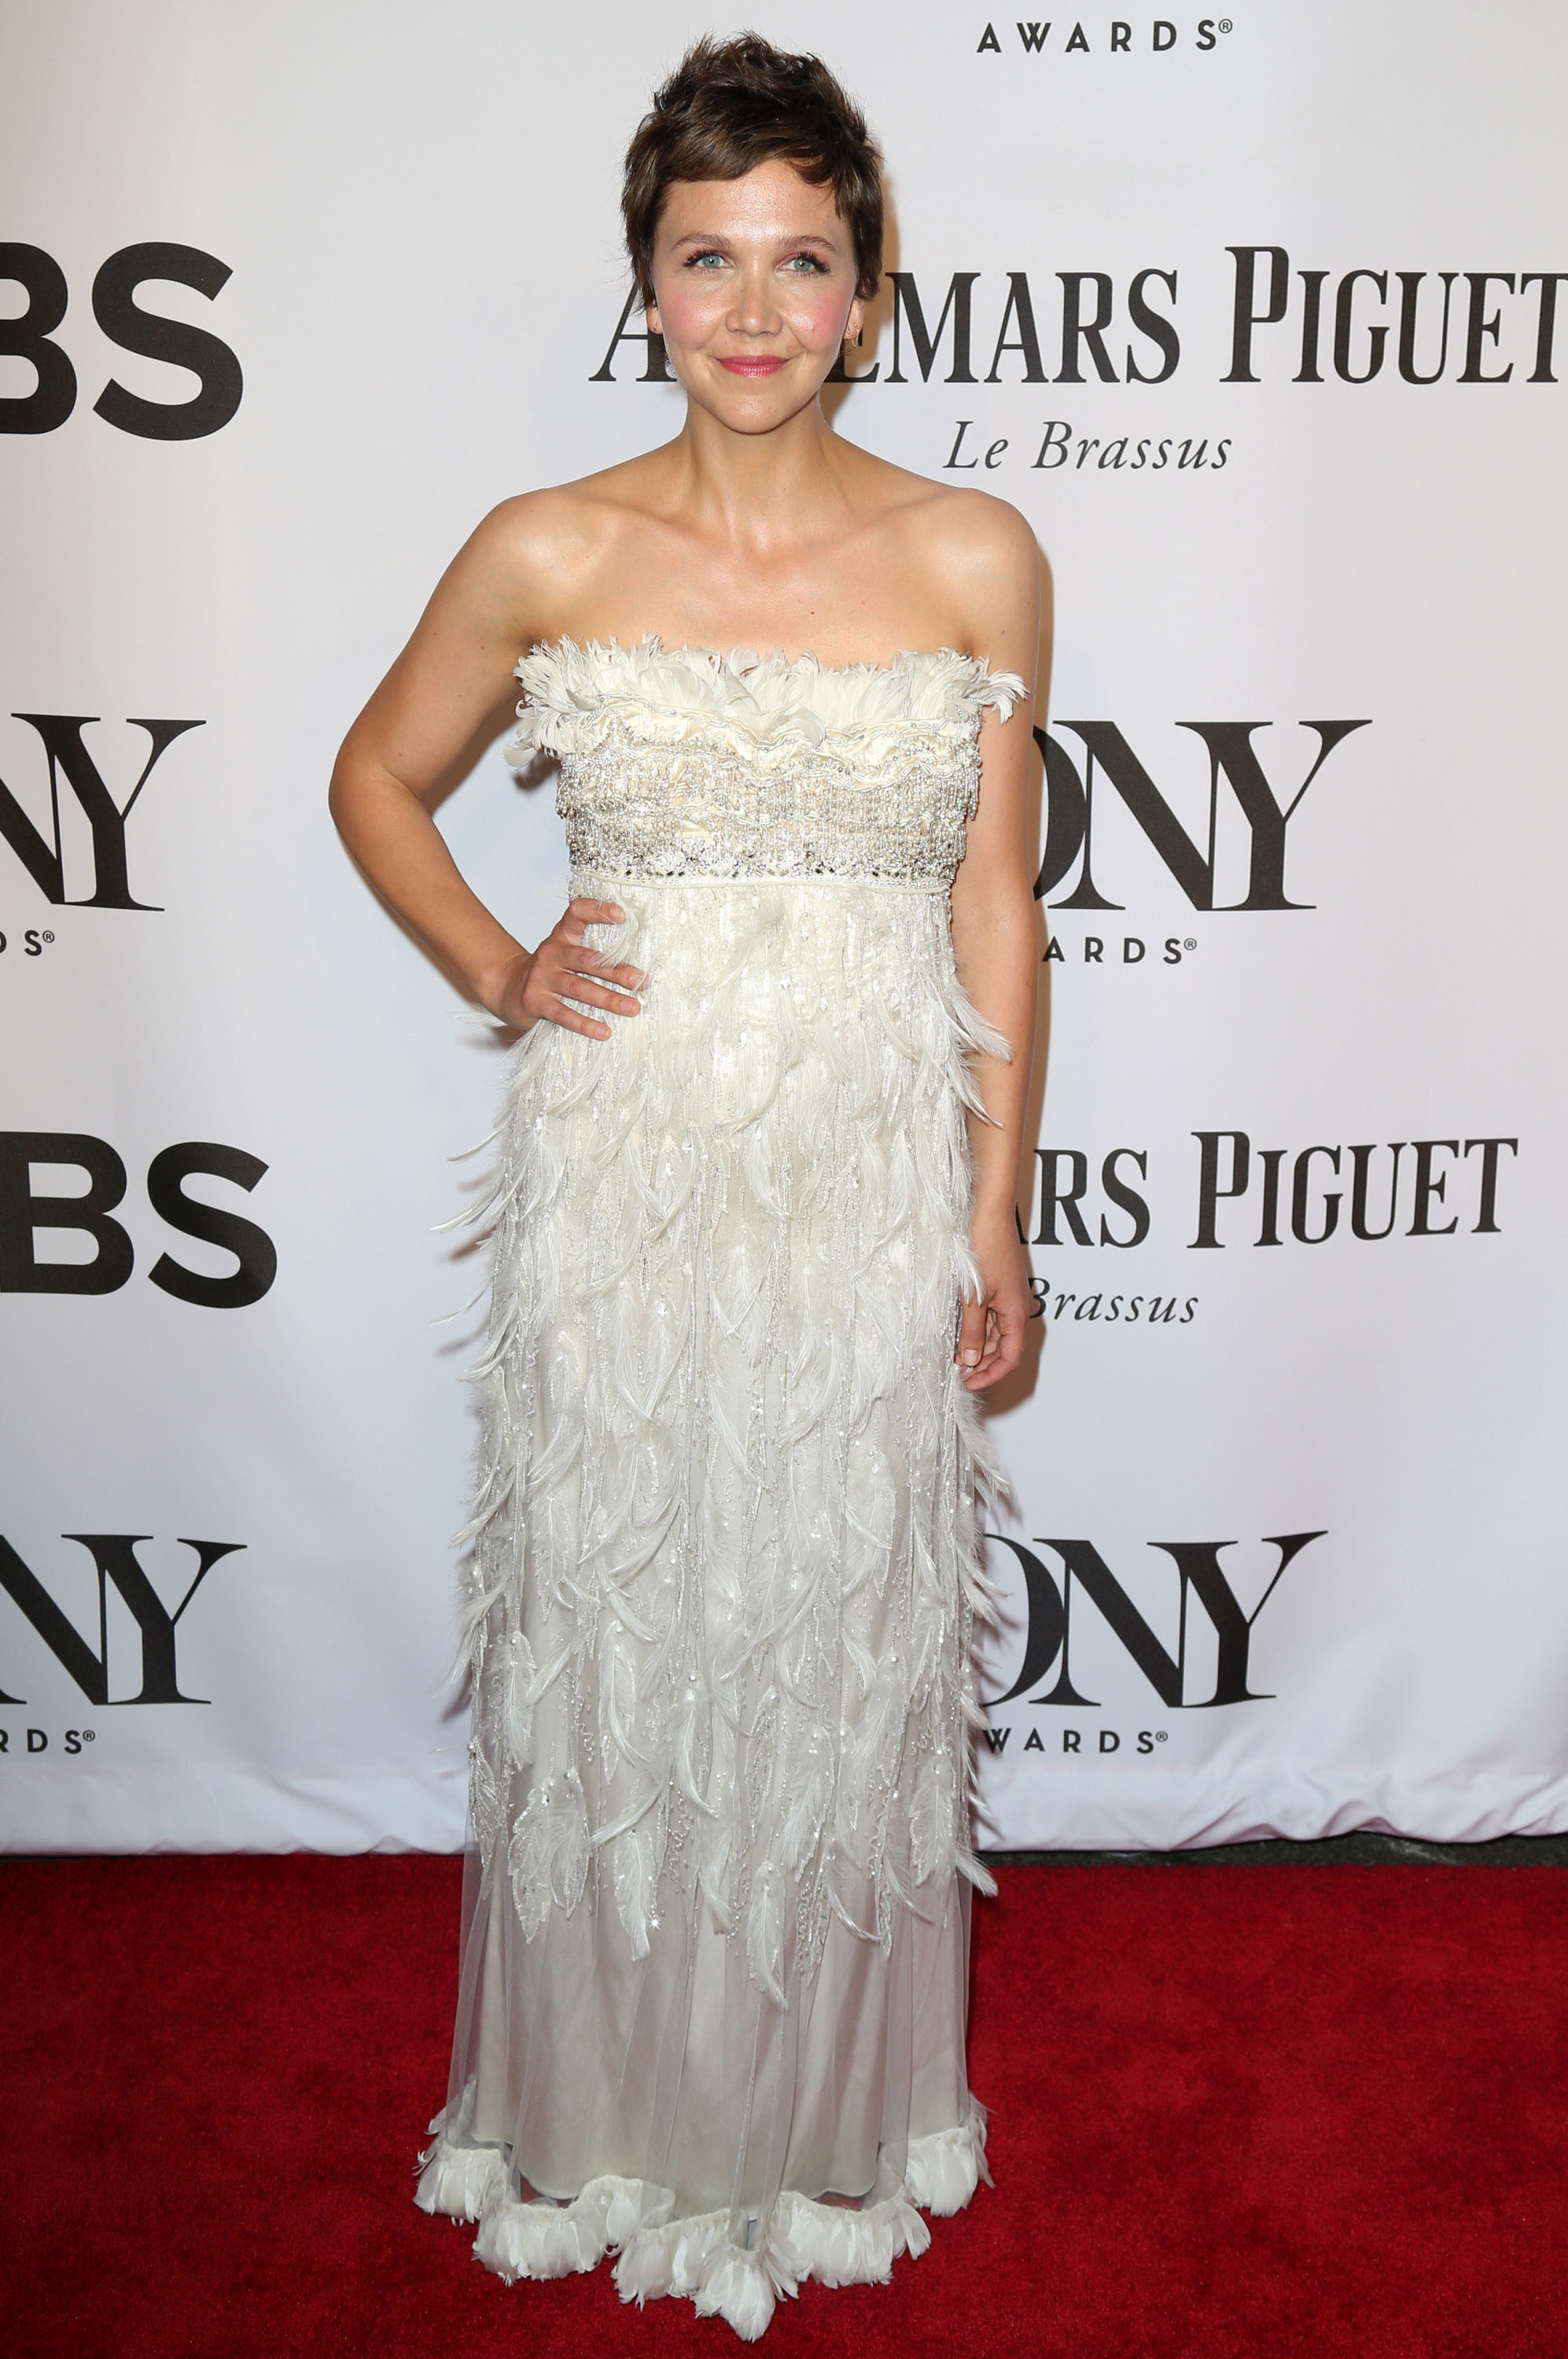 Tony Awards Fug Carpet: Maggie Gyllenhaal in Dolce & Gabbana